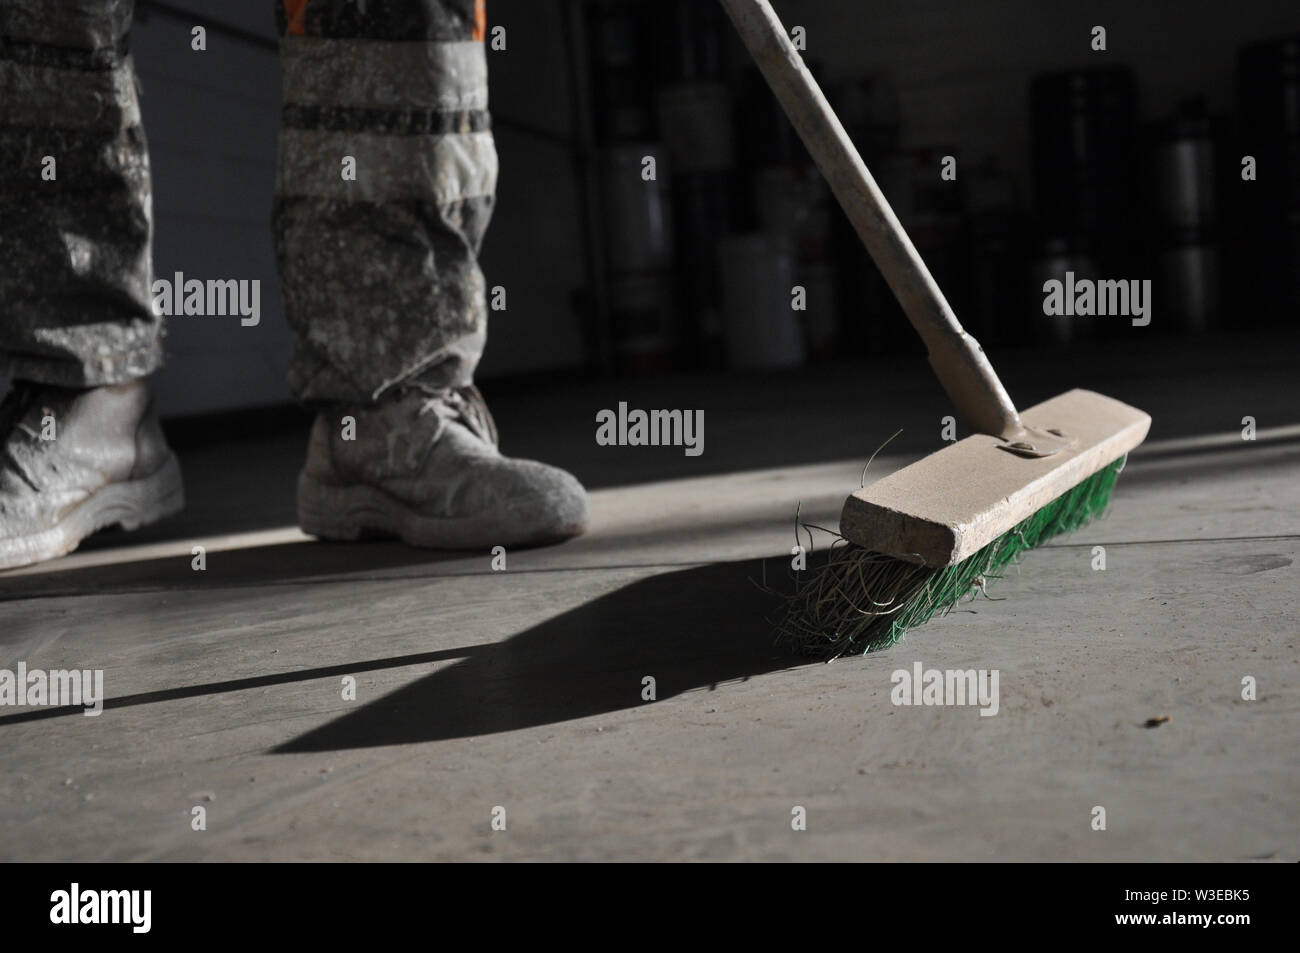 Cleaning of the production room using a brush. Manual cleaning. - Stock Image